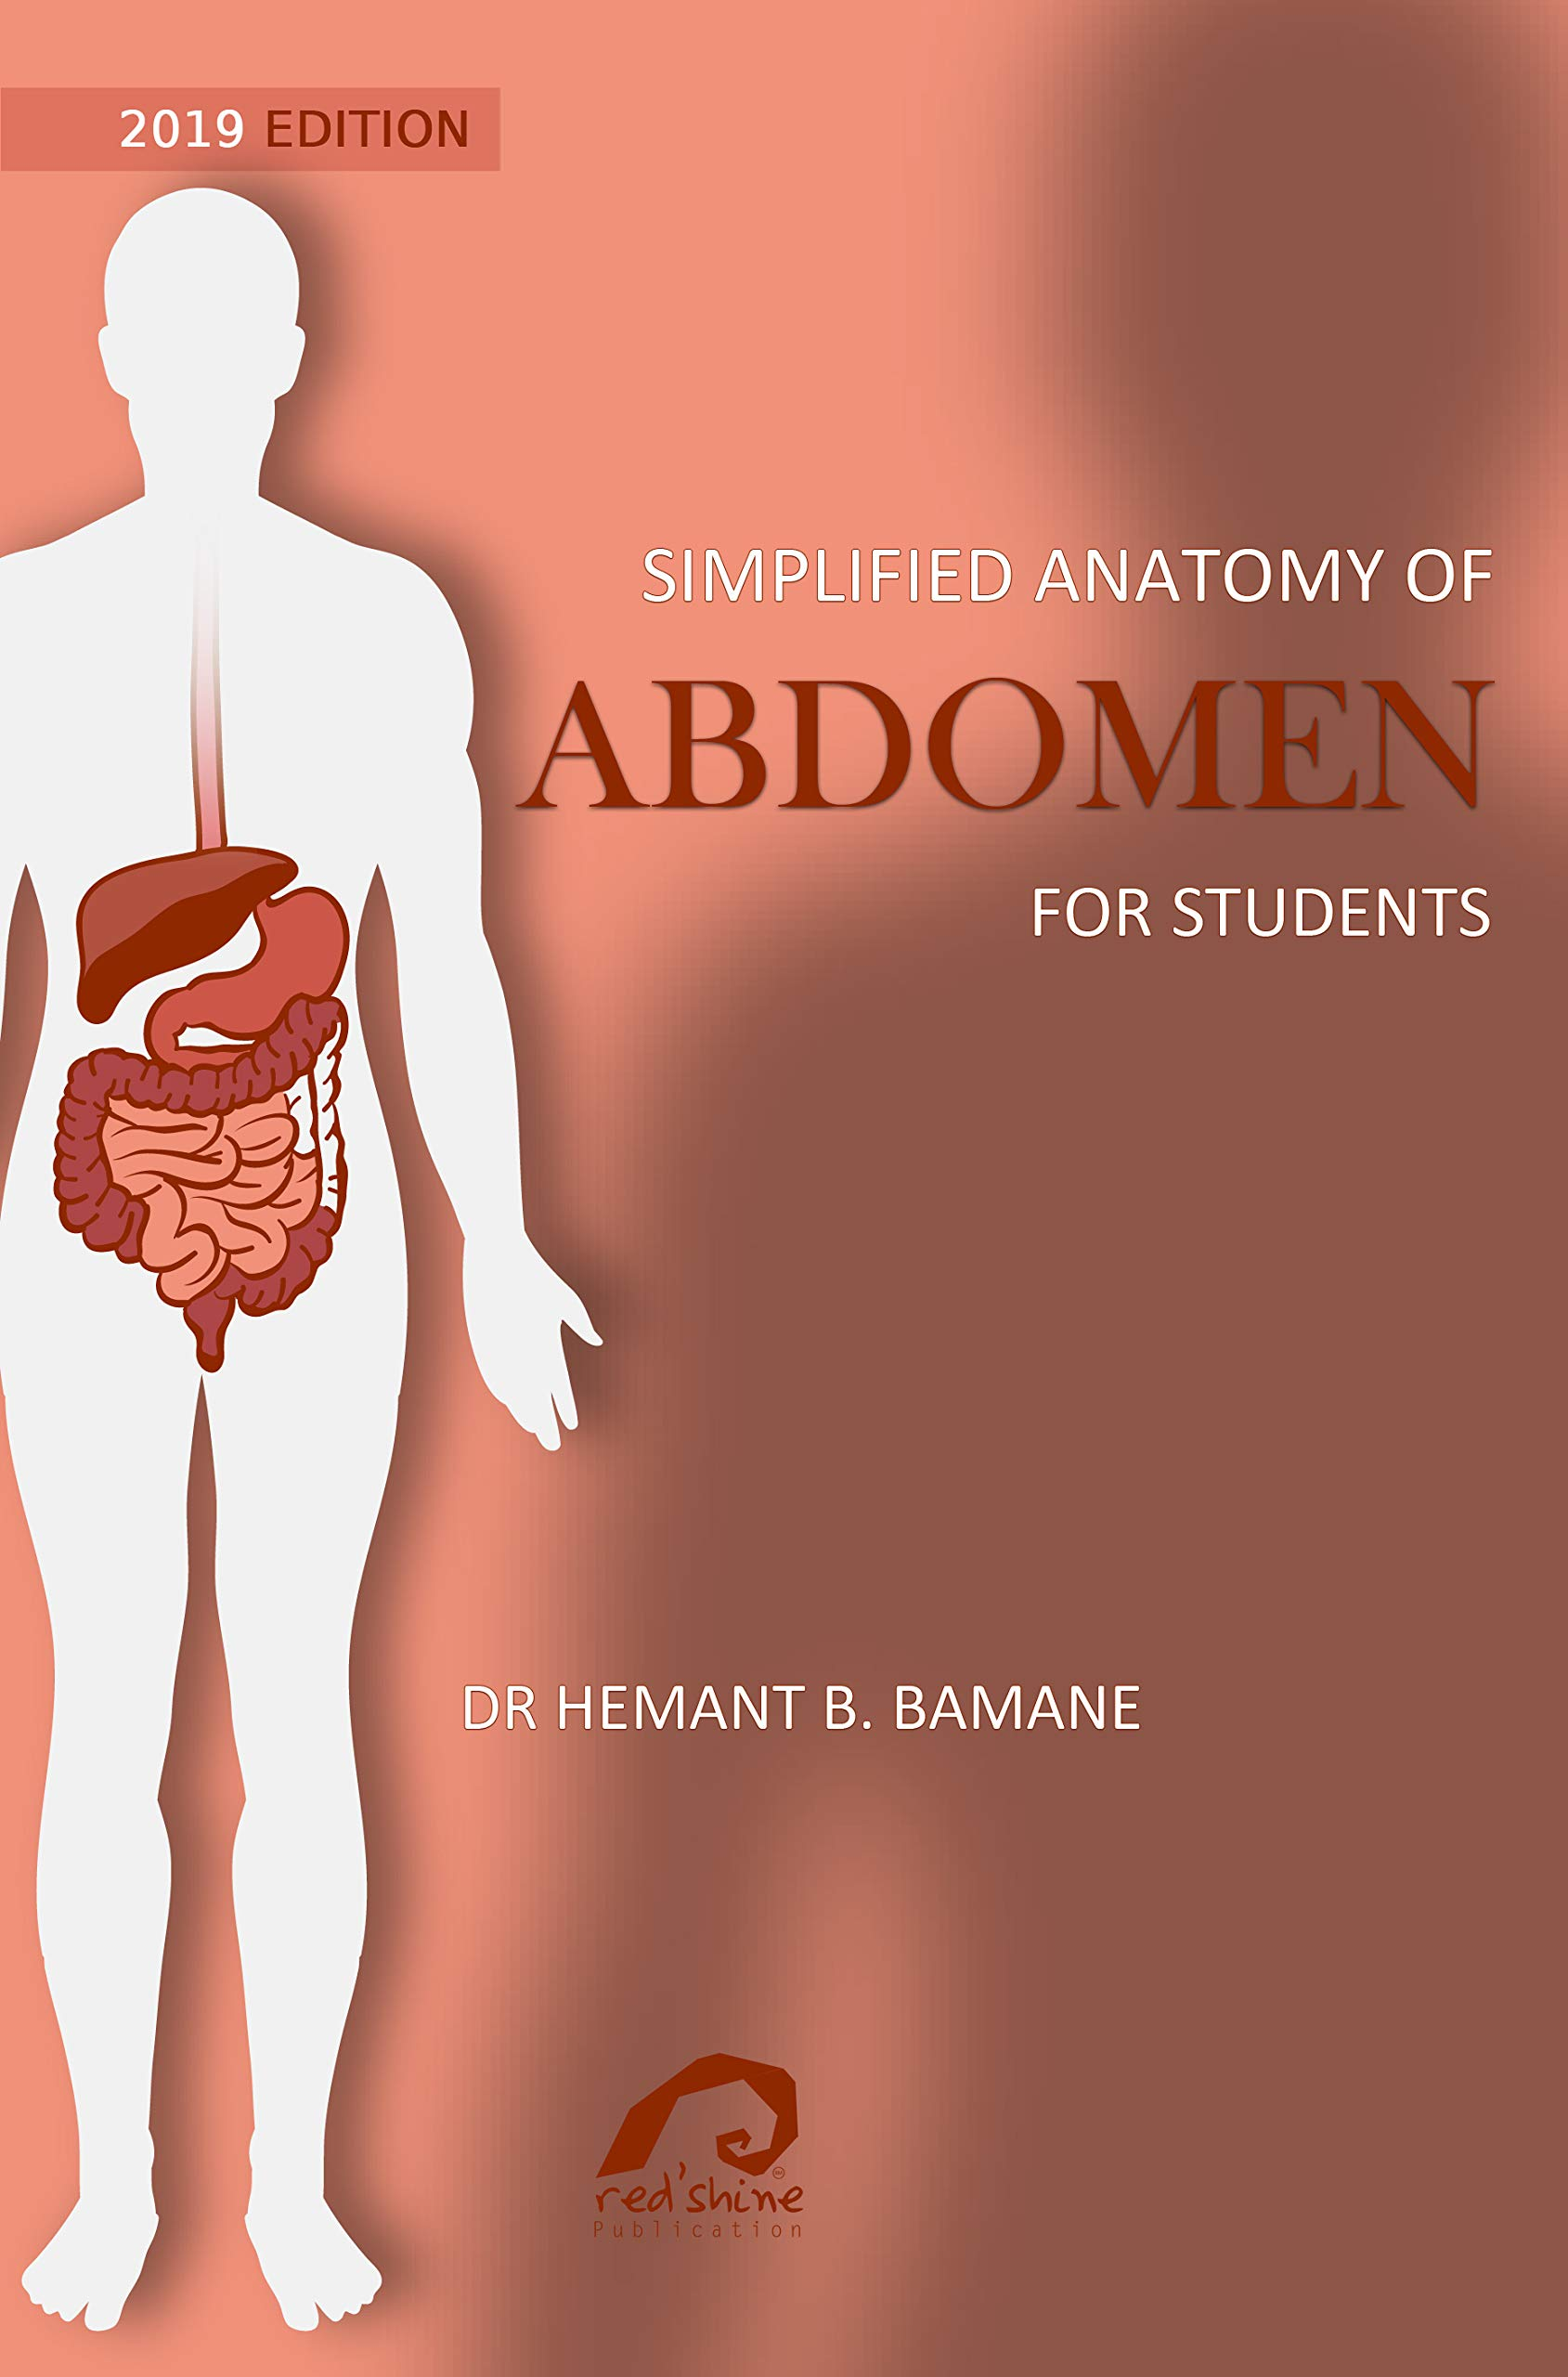 SIMPLIFIED ANATOMY OF ABDOMEN FOR STUDENTS